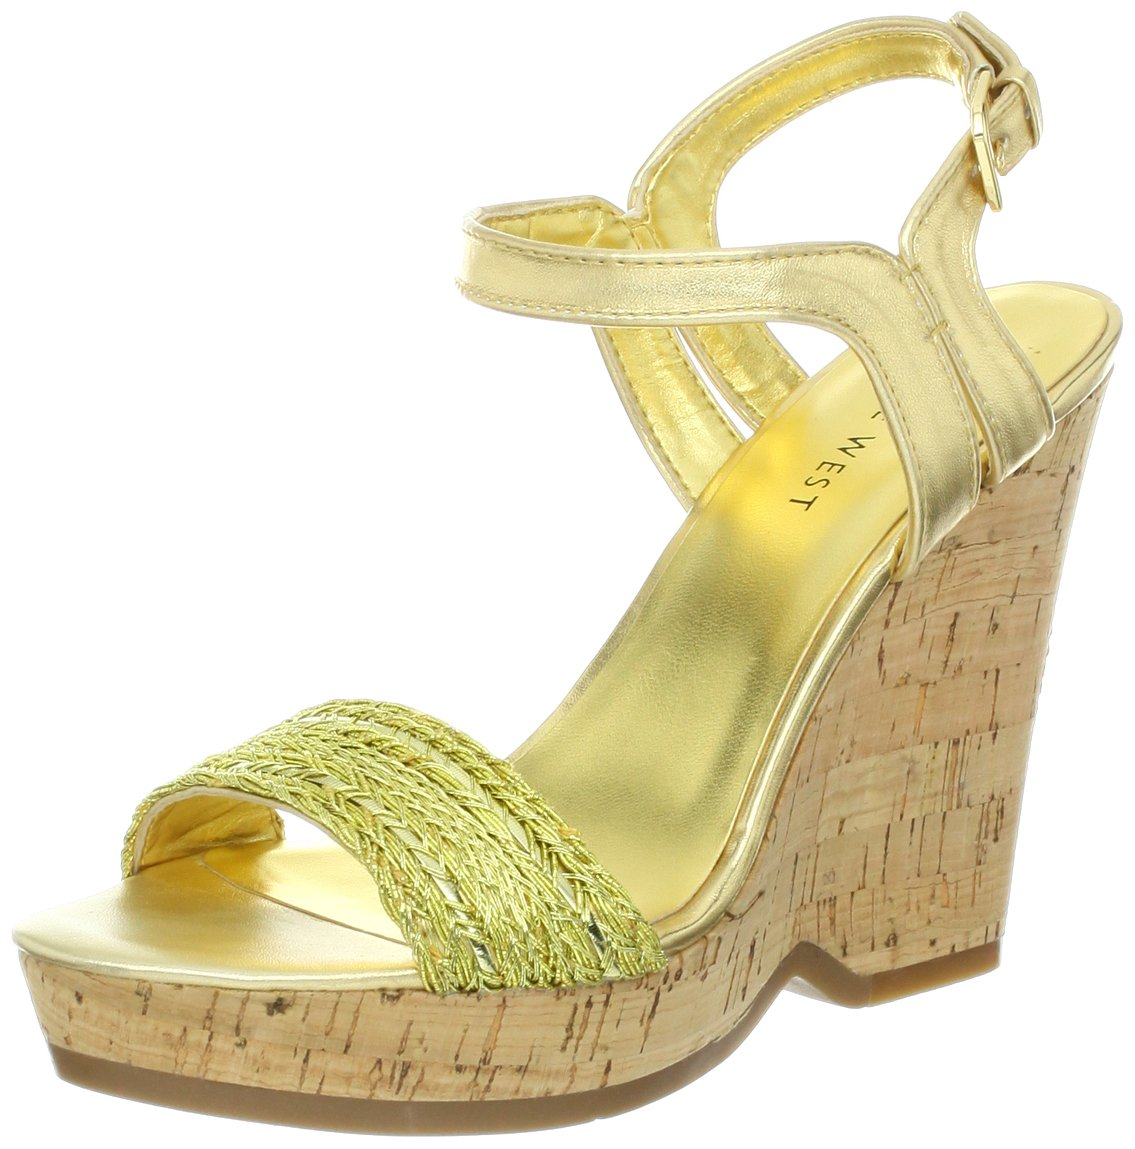 Nine West Women's Trickster Wedge Sandal B00ANZP890 9.5 B(M) US Gold/Gold Synthetic